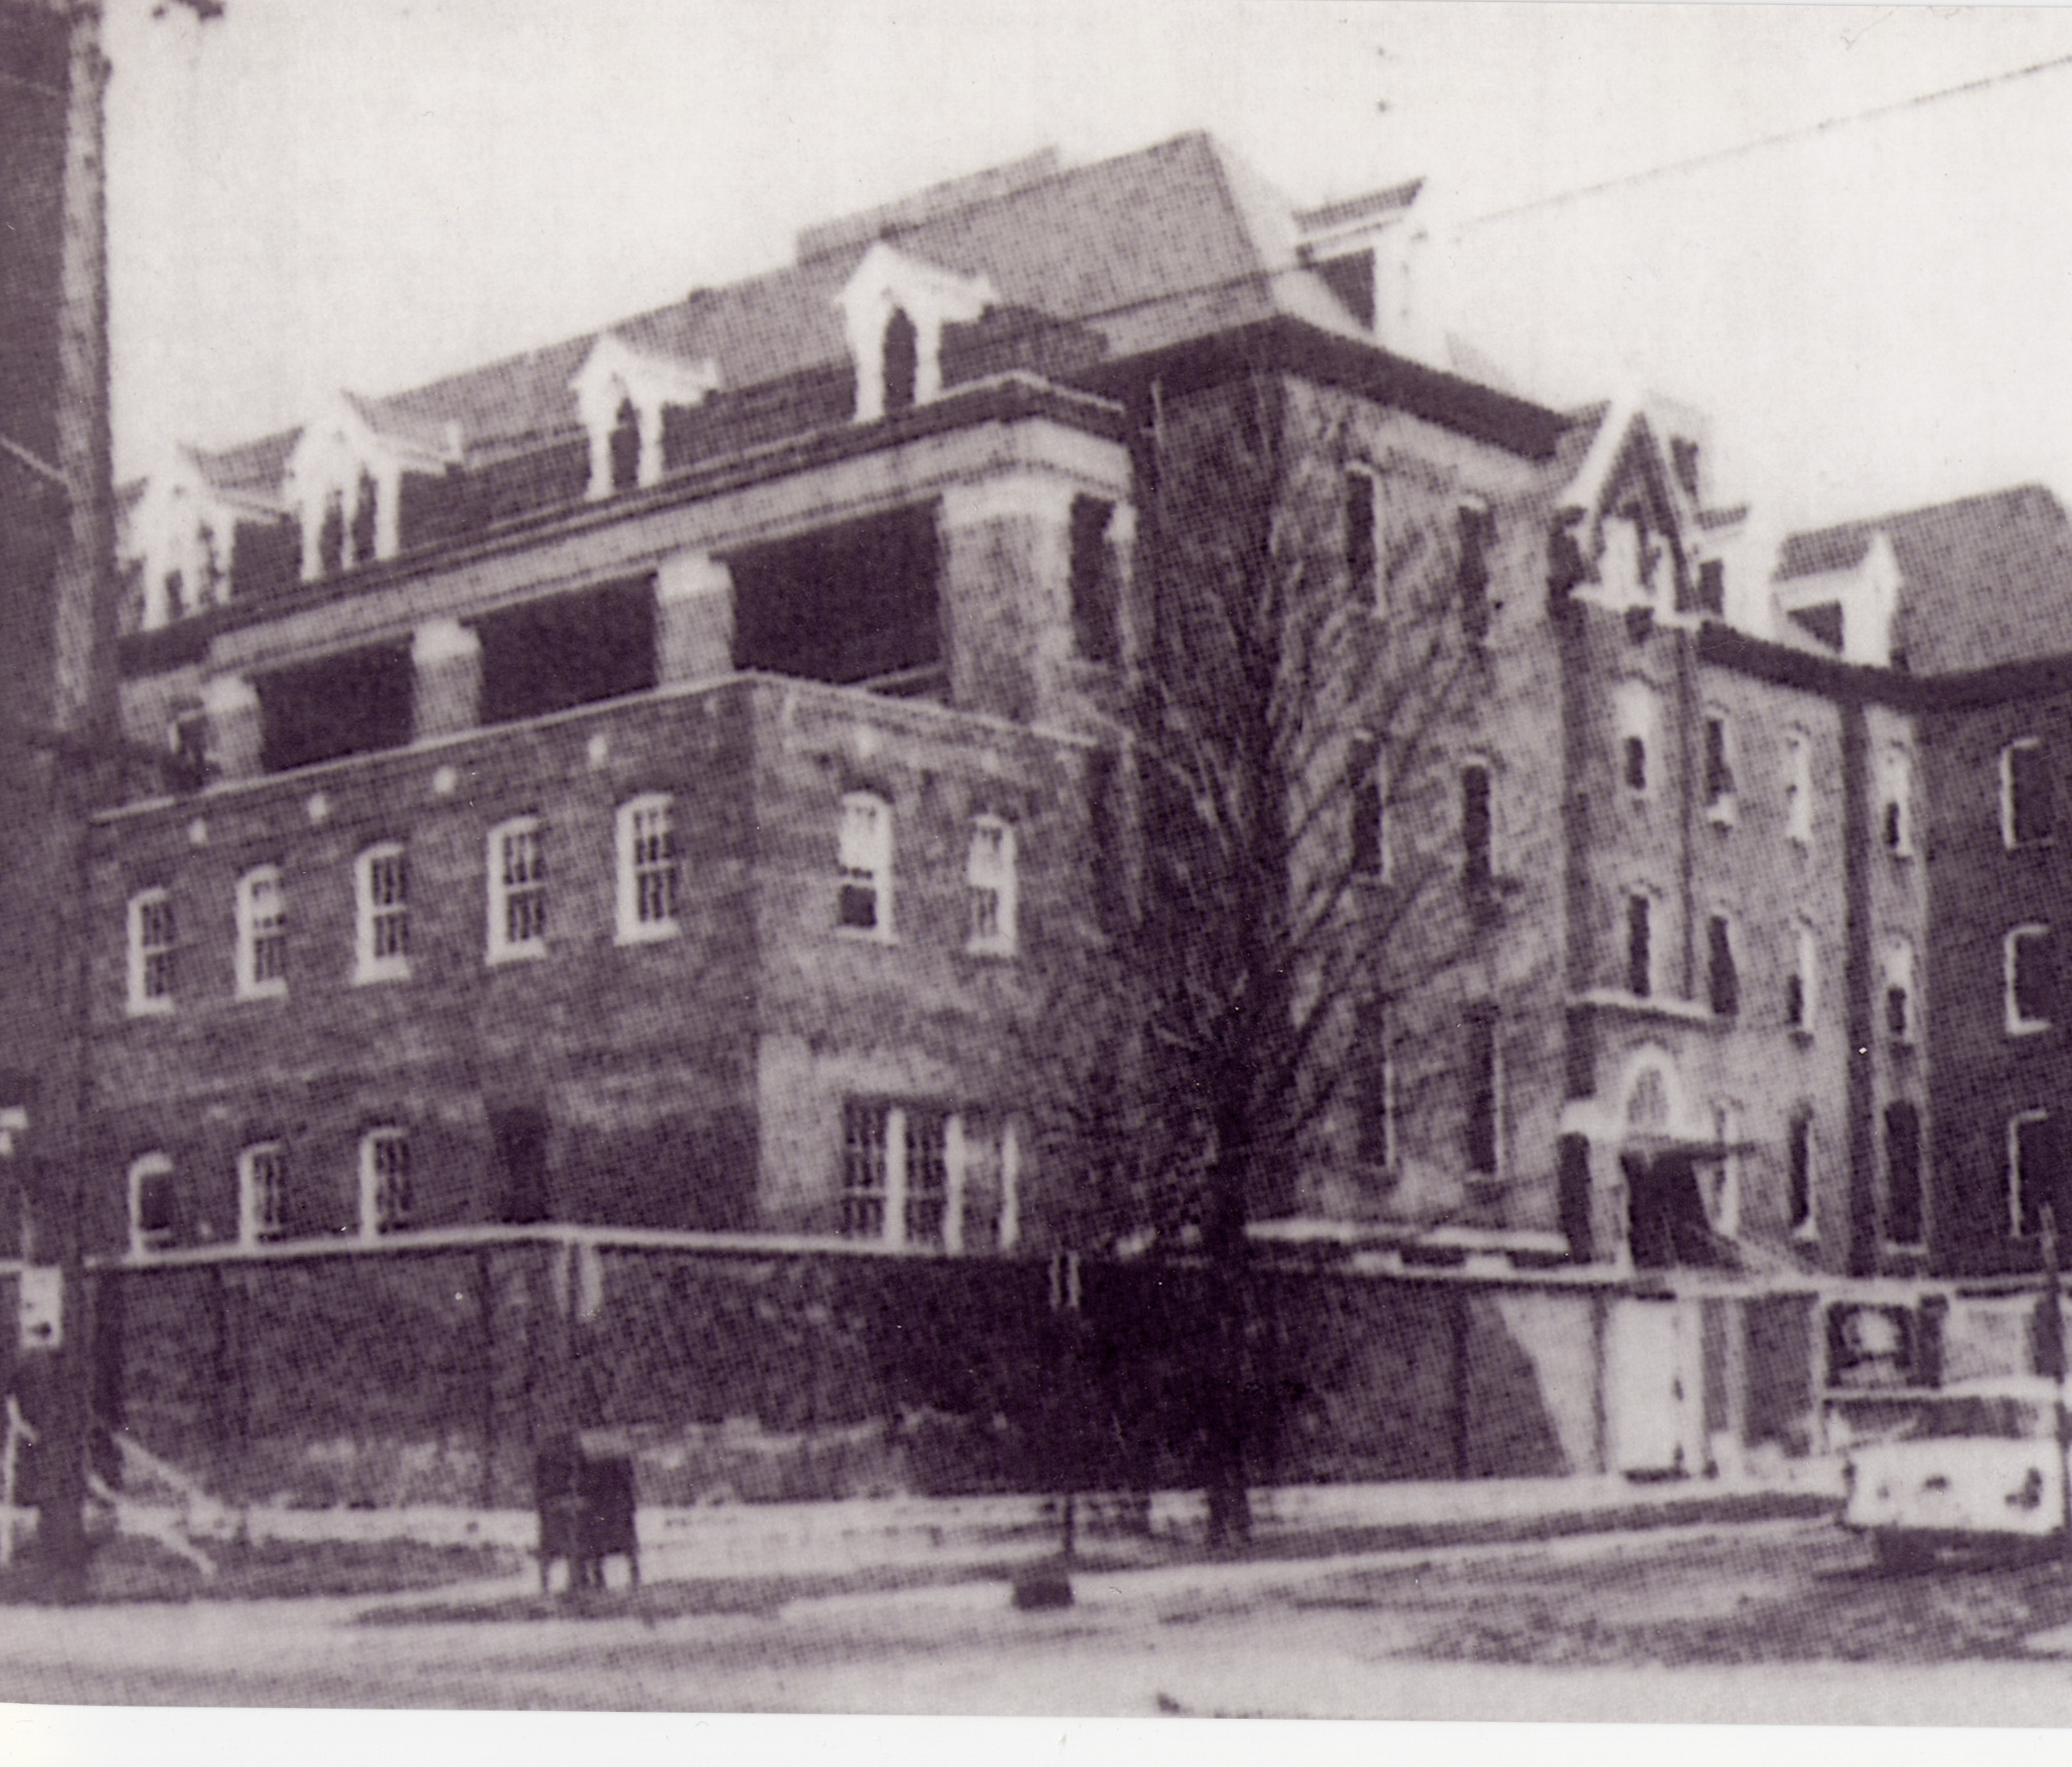 The Little Sisters of the Poor religious order's Home of the Aged Poor was at 520 East Vermont Street, sharing the city block with the first location of St. Vincent's Infirmary, and long survived it. Source: Indiana Medical History Museum.